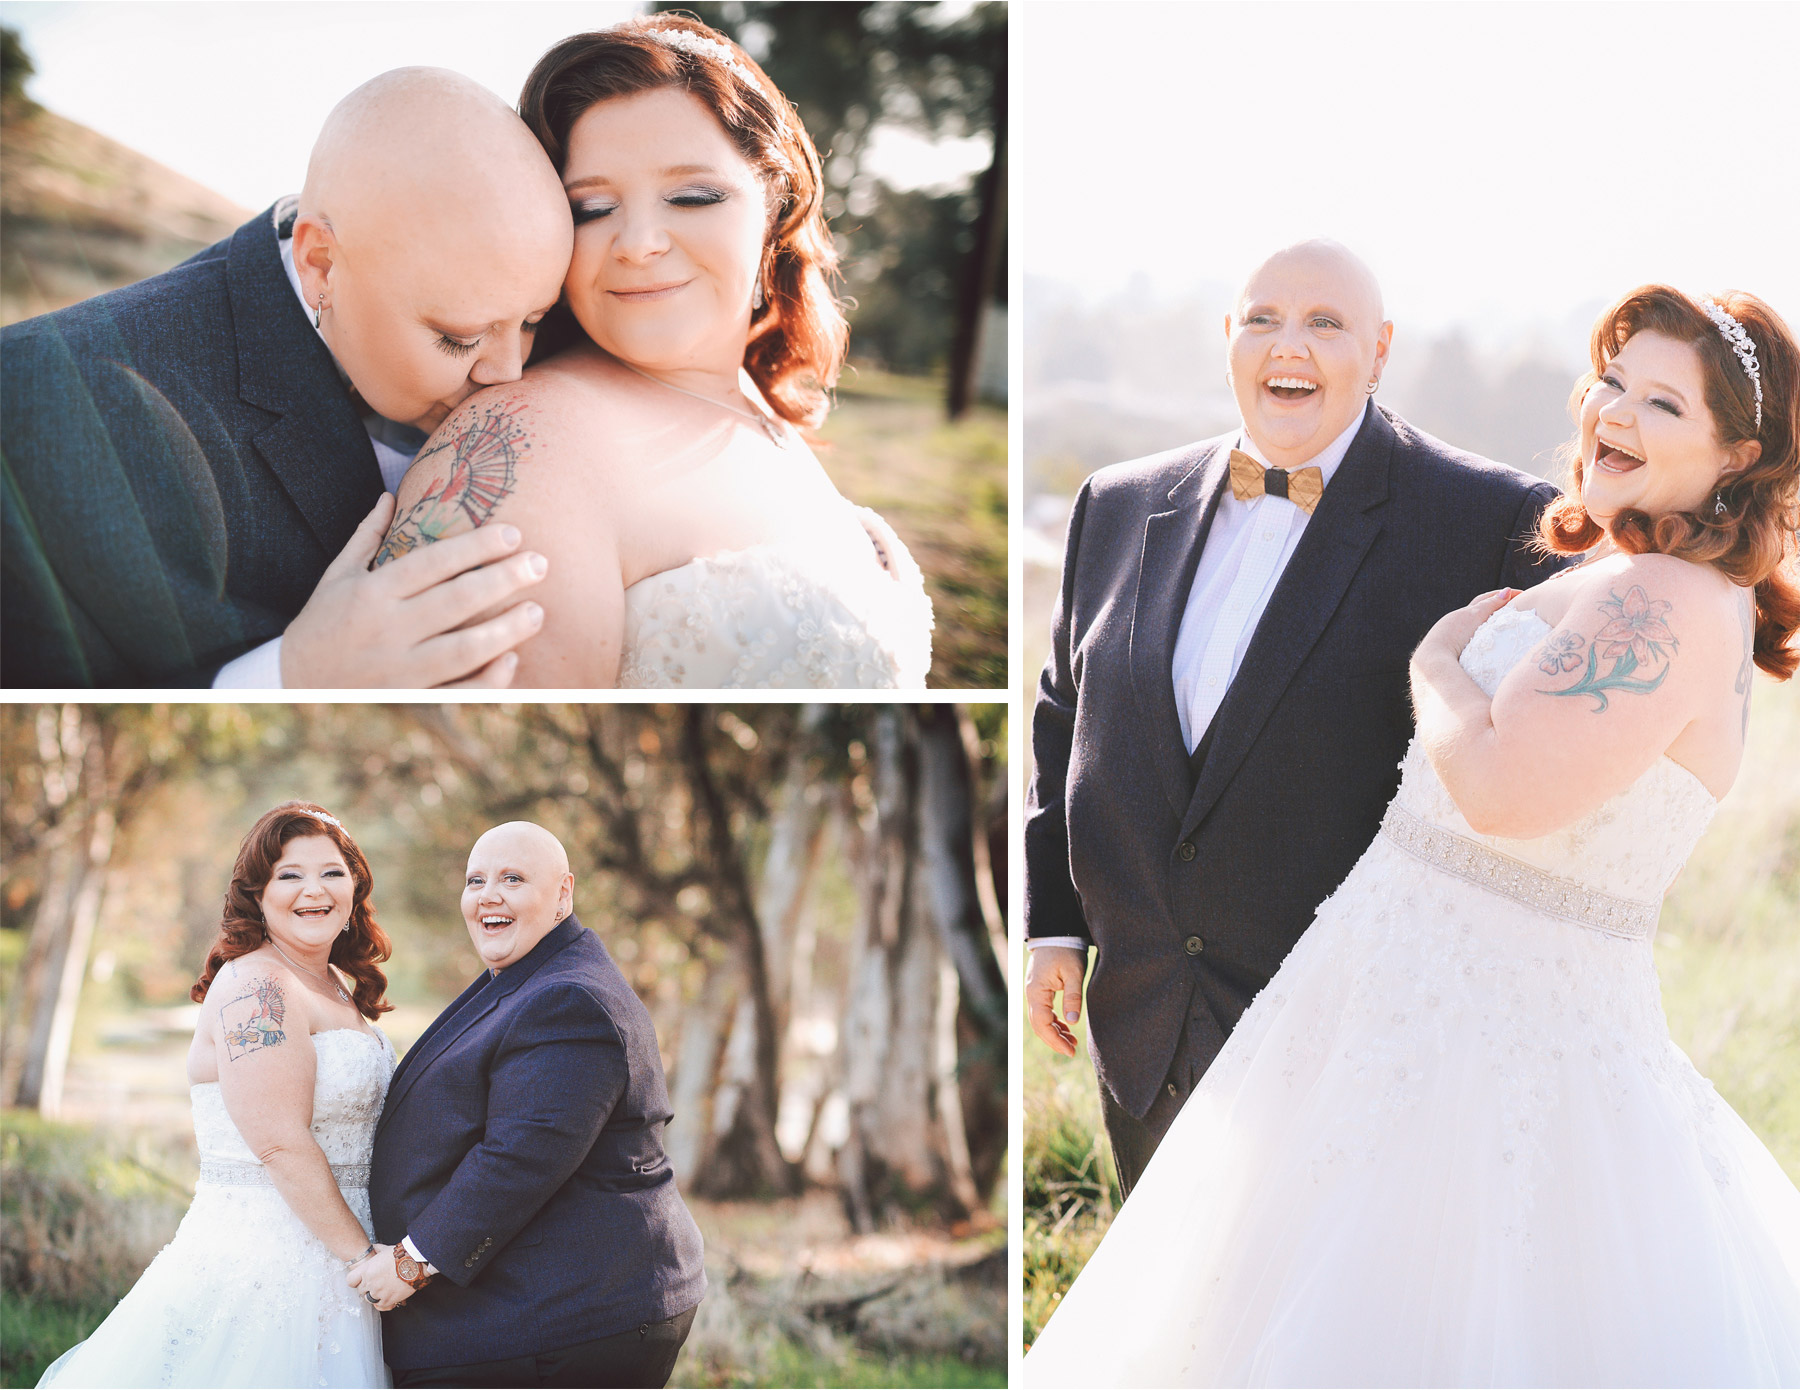 09-Los-Angeles-California-Wedding-Photographer-by-Vick-Photography-Highland-Springs-Ranch-LGBT-Bride-First-Look-Rebecca-and-Terri.jpg